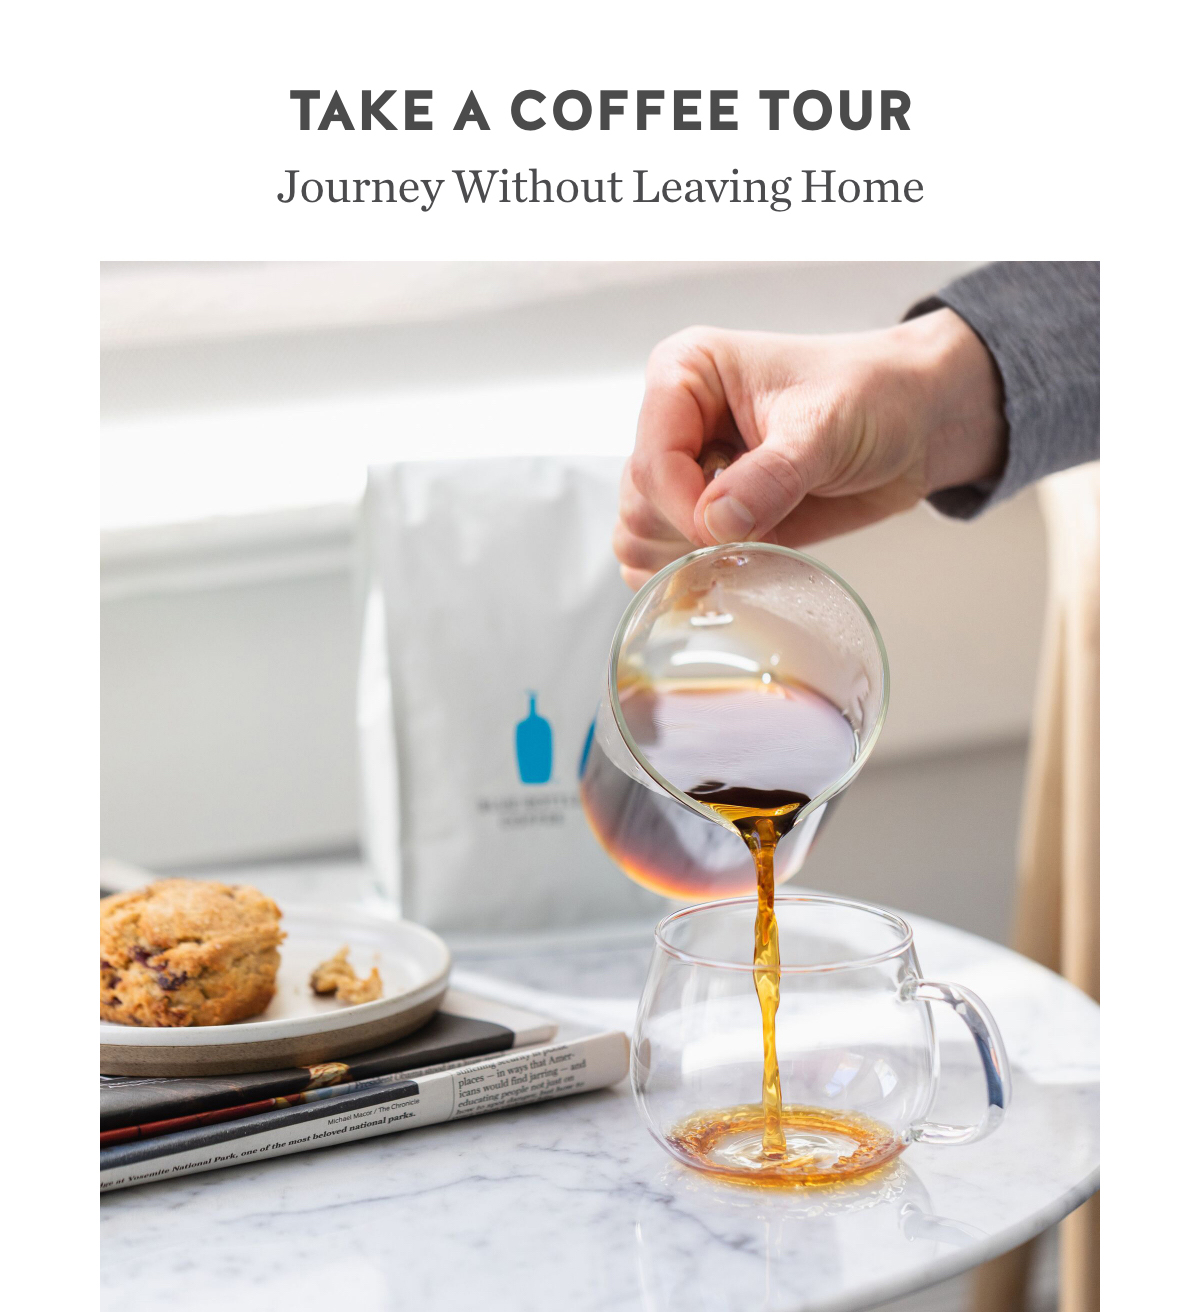 Take a coffee tour. Journey without leaving home.